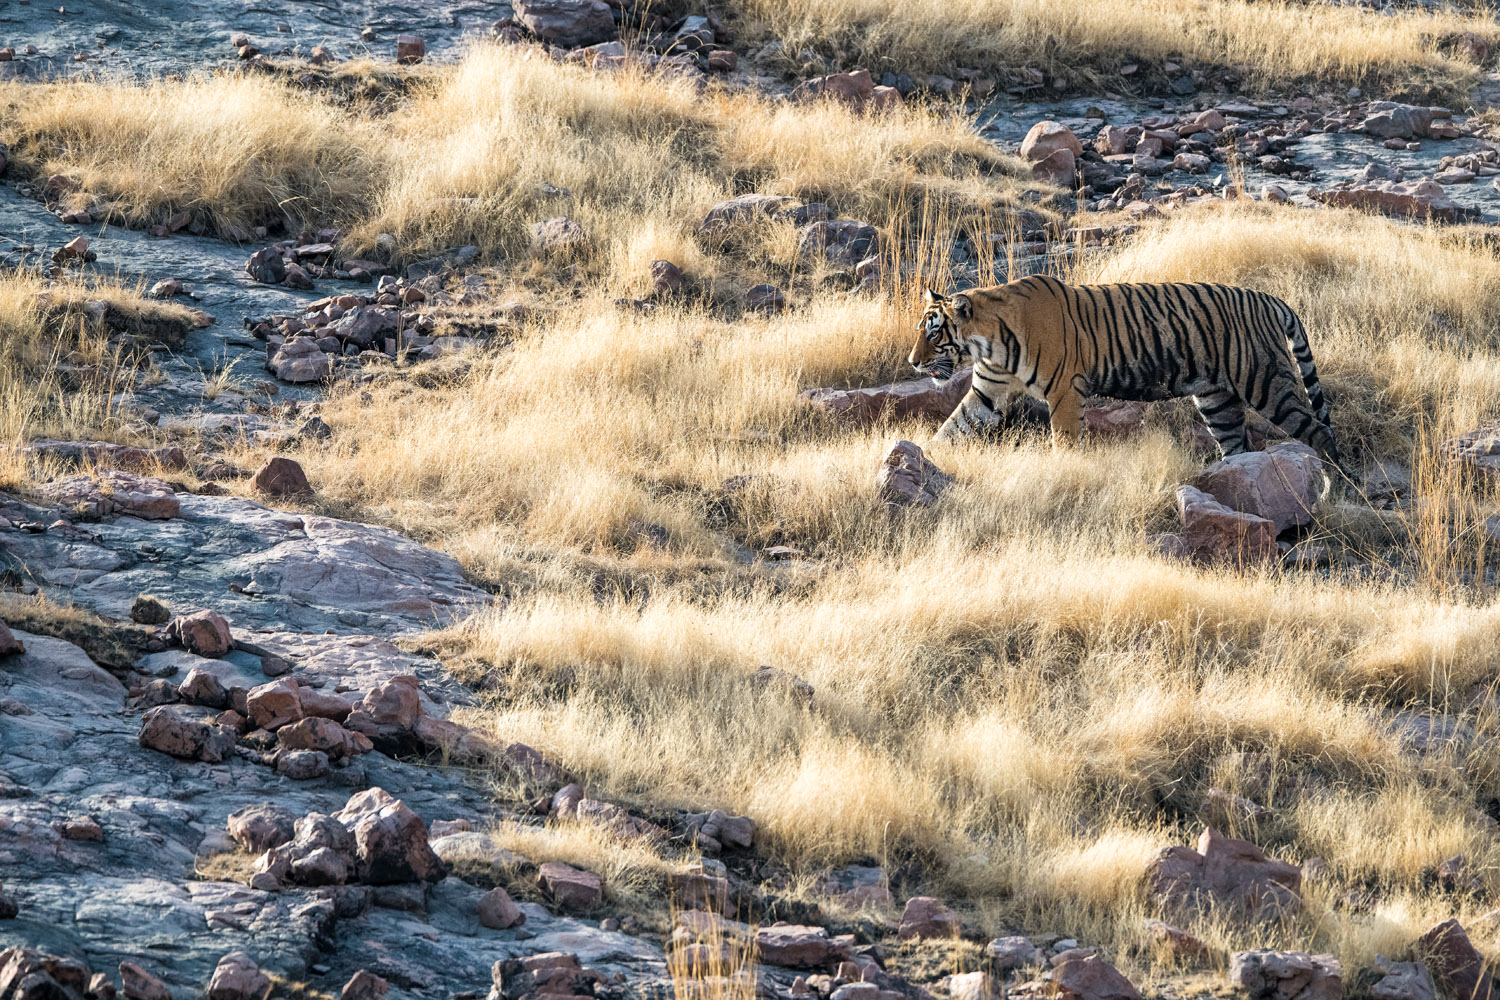 Bengal tiger walking across rocky slope, Ranthambhore National Park, Rajasthan, India